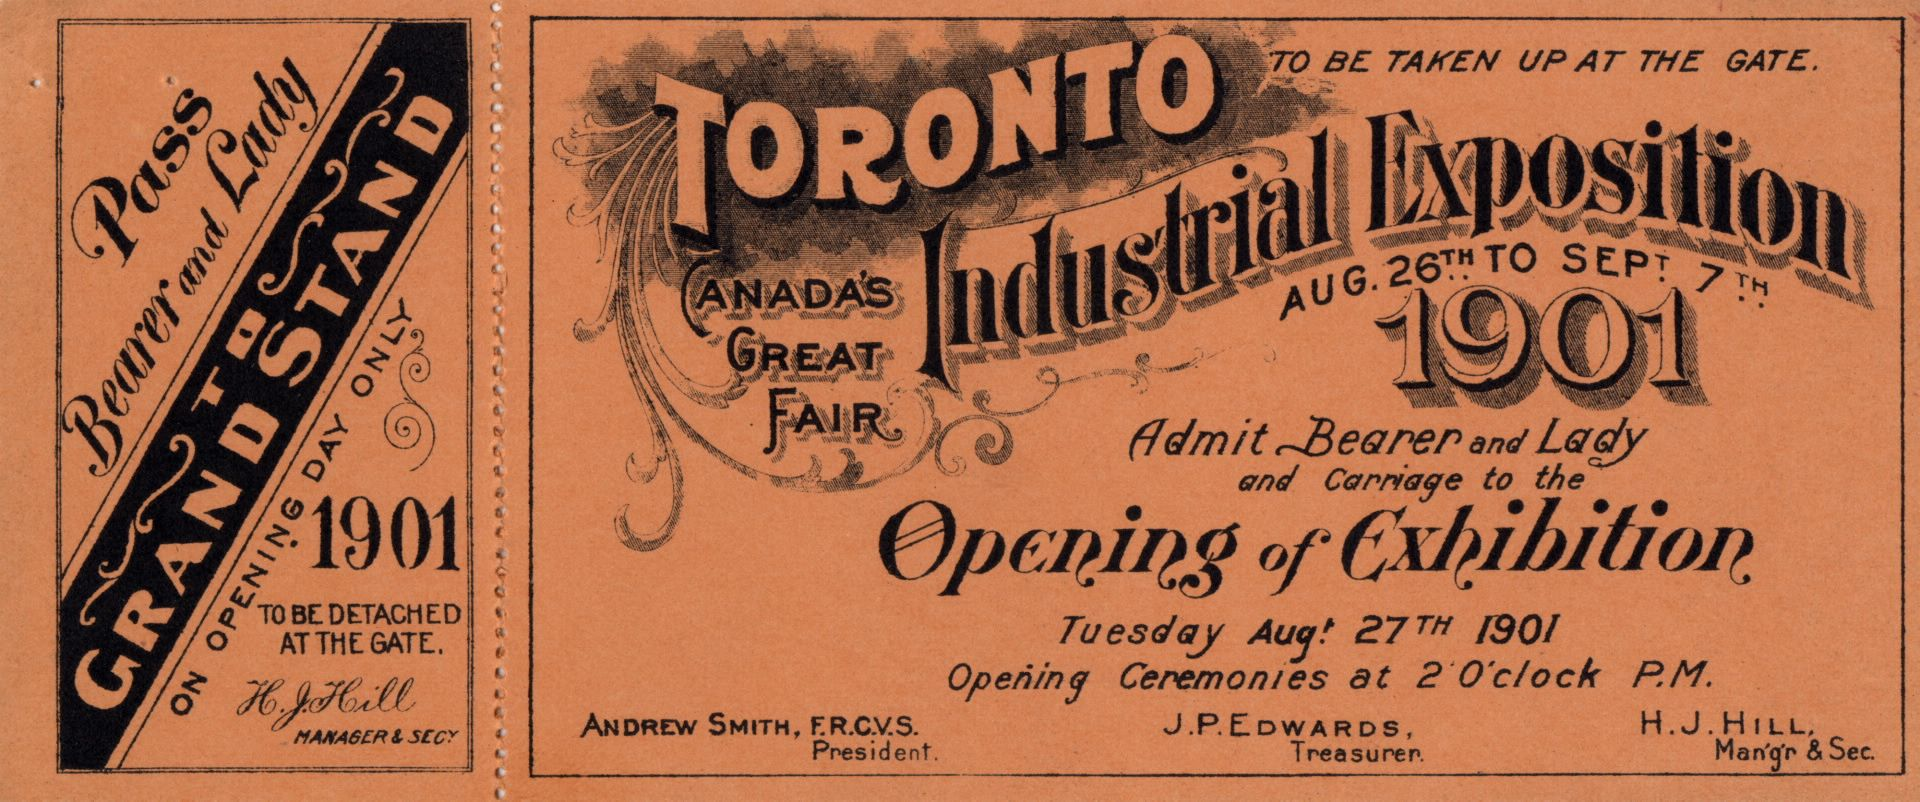 An unused ticket to the 1901 industrial exposition